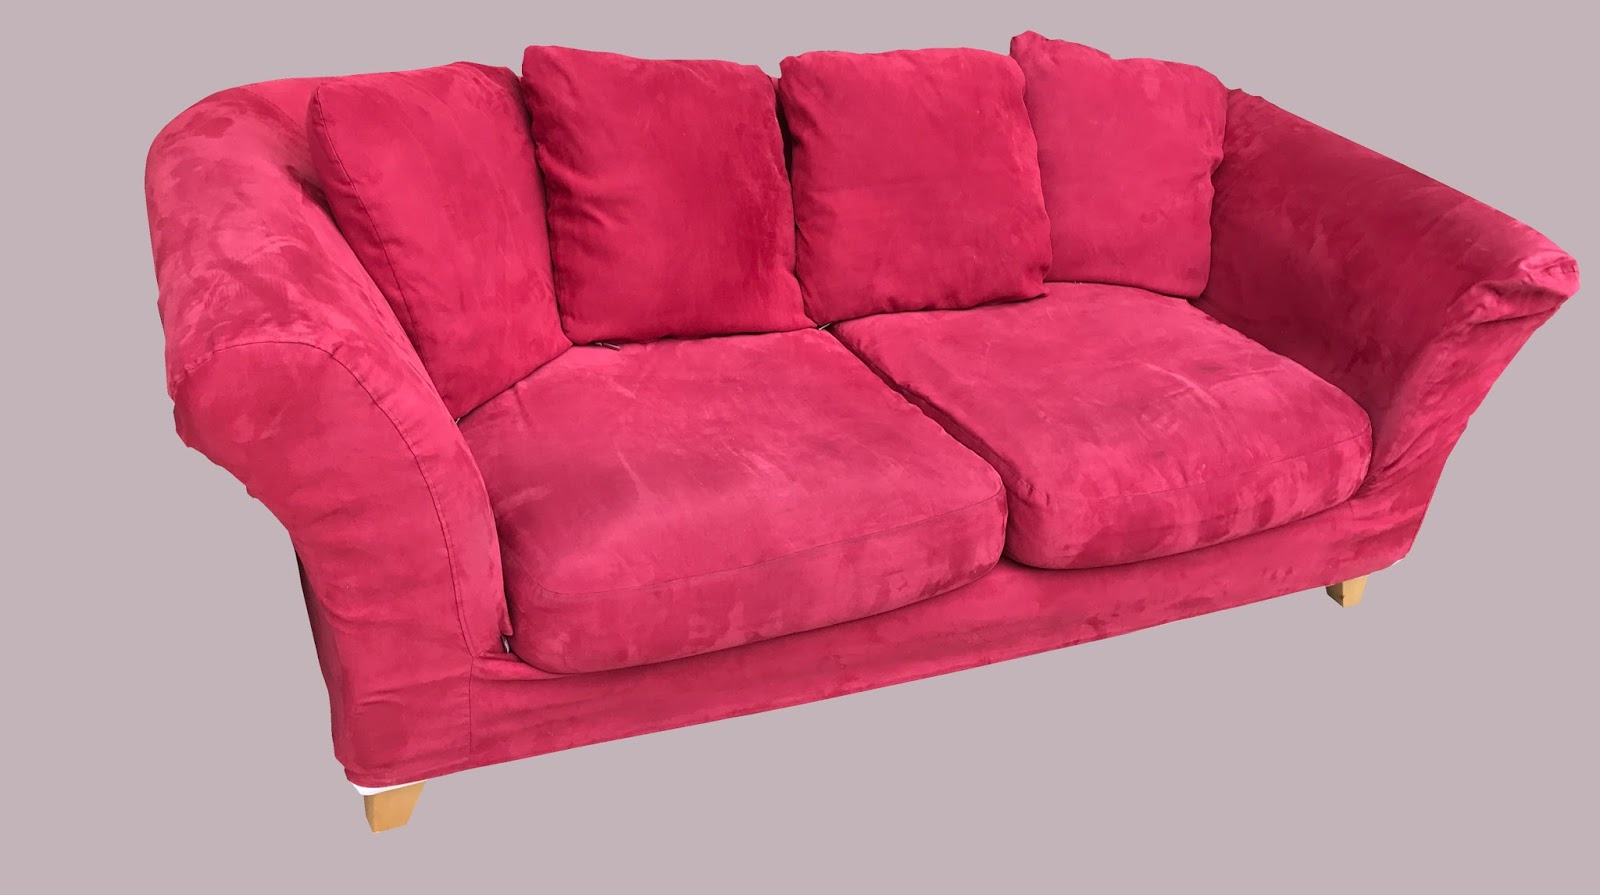 red microfiber reclining sofa sofas melbourne cbd uhuru furniture and collectibles 155